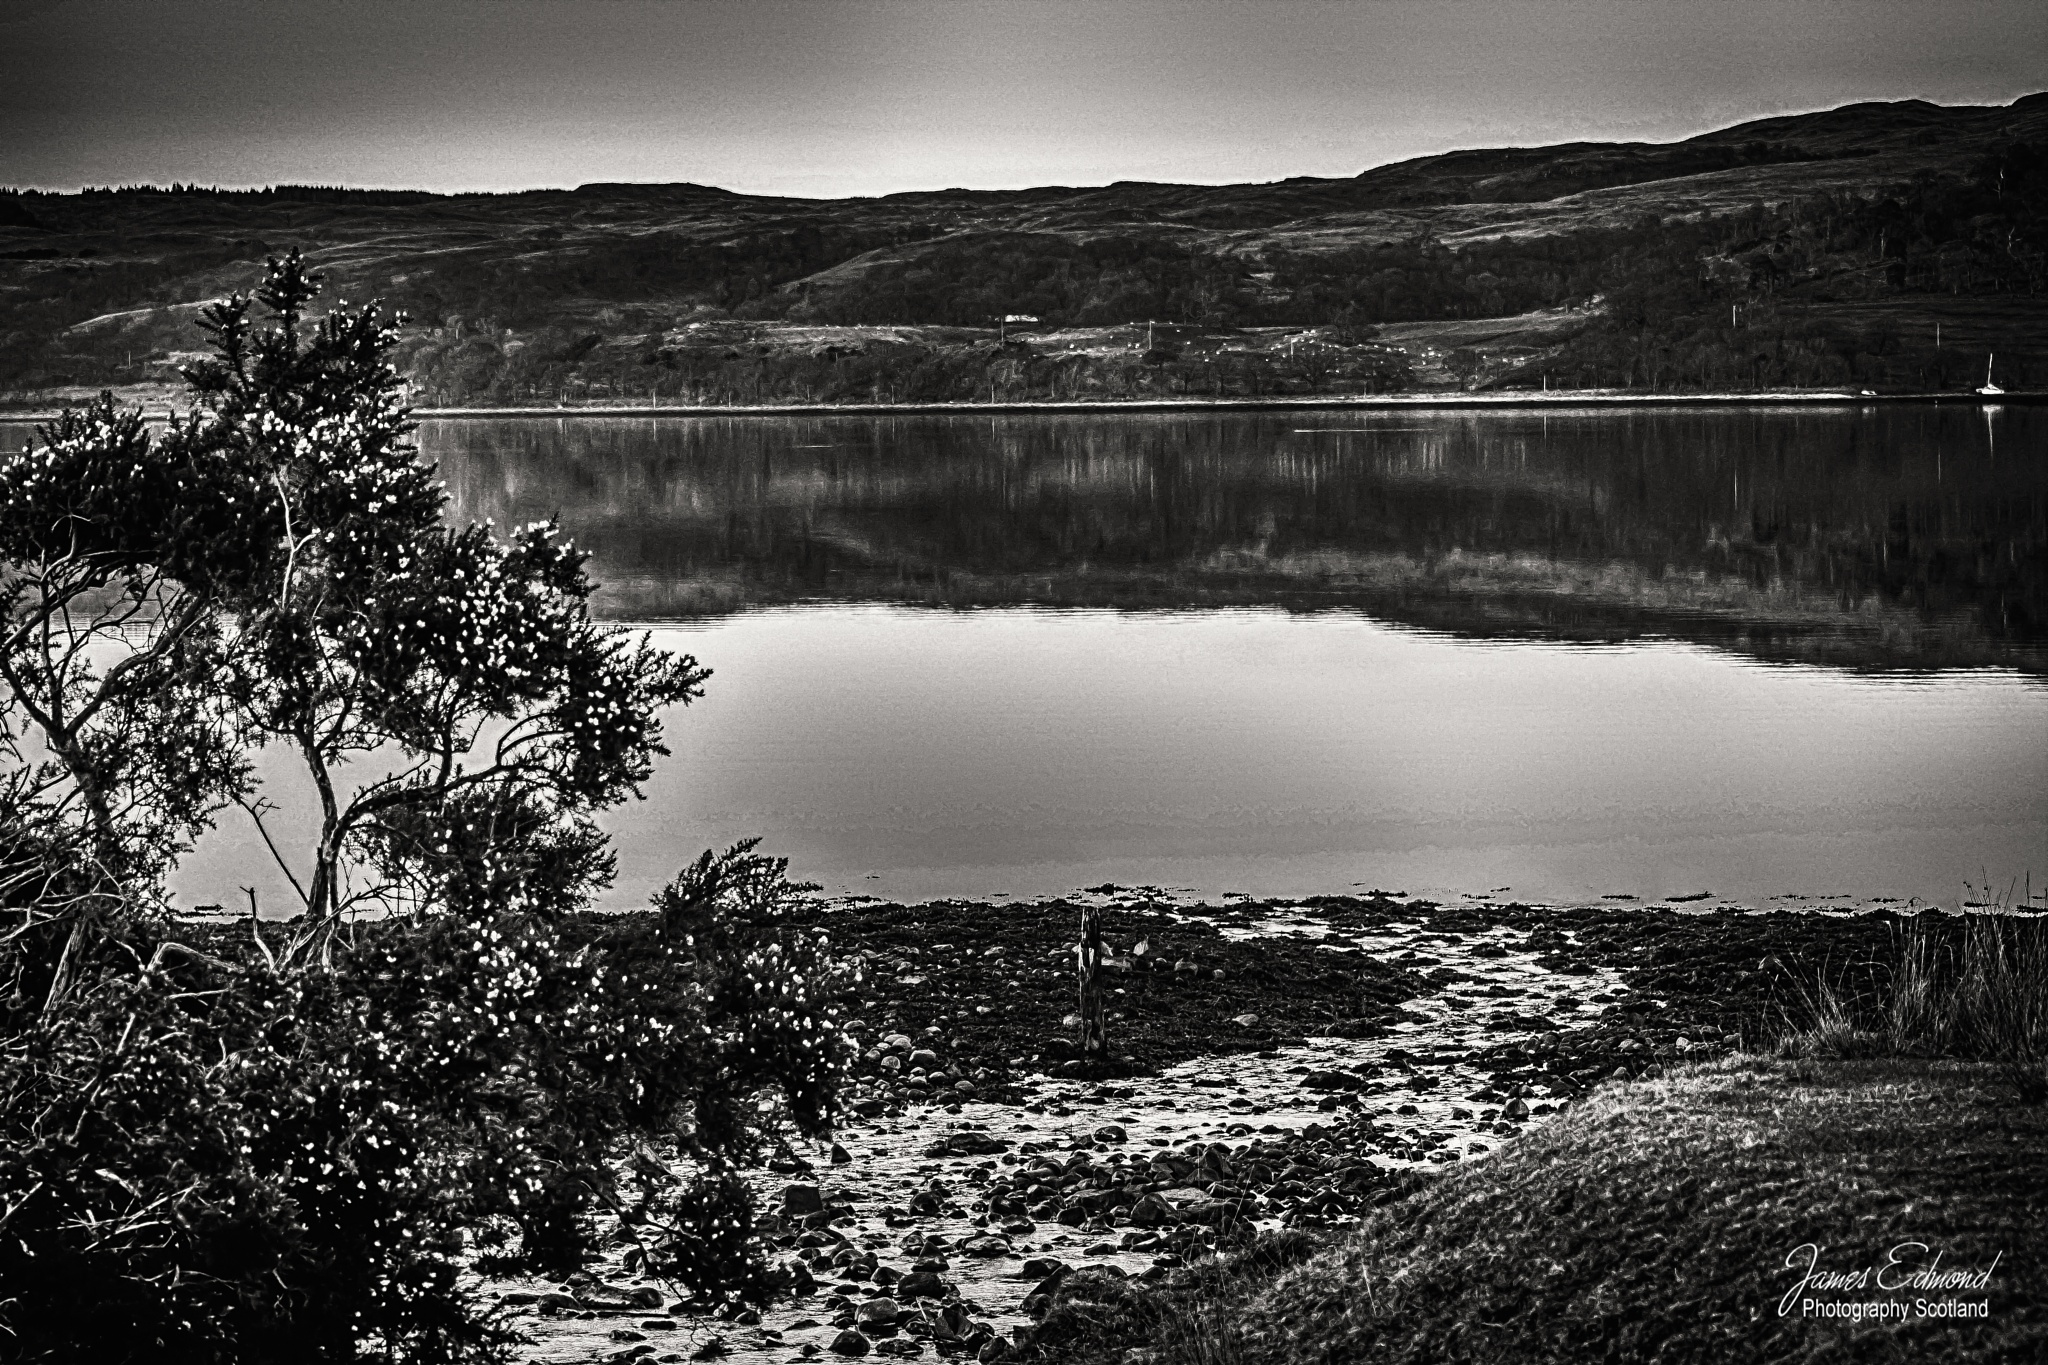 Monochrome of the Hills overlooking Loch Etive by James Edmond Photography